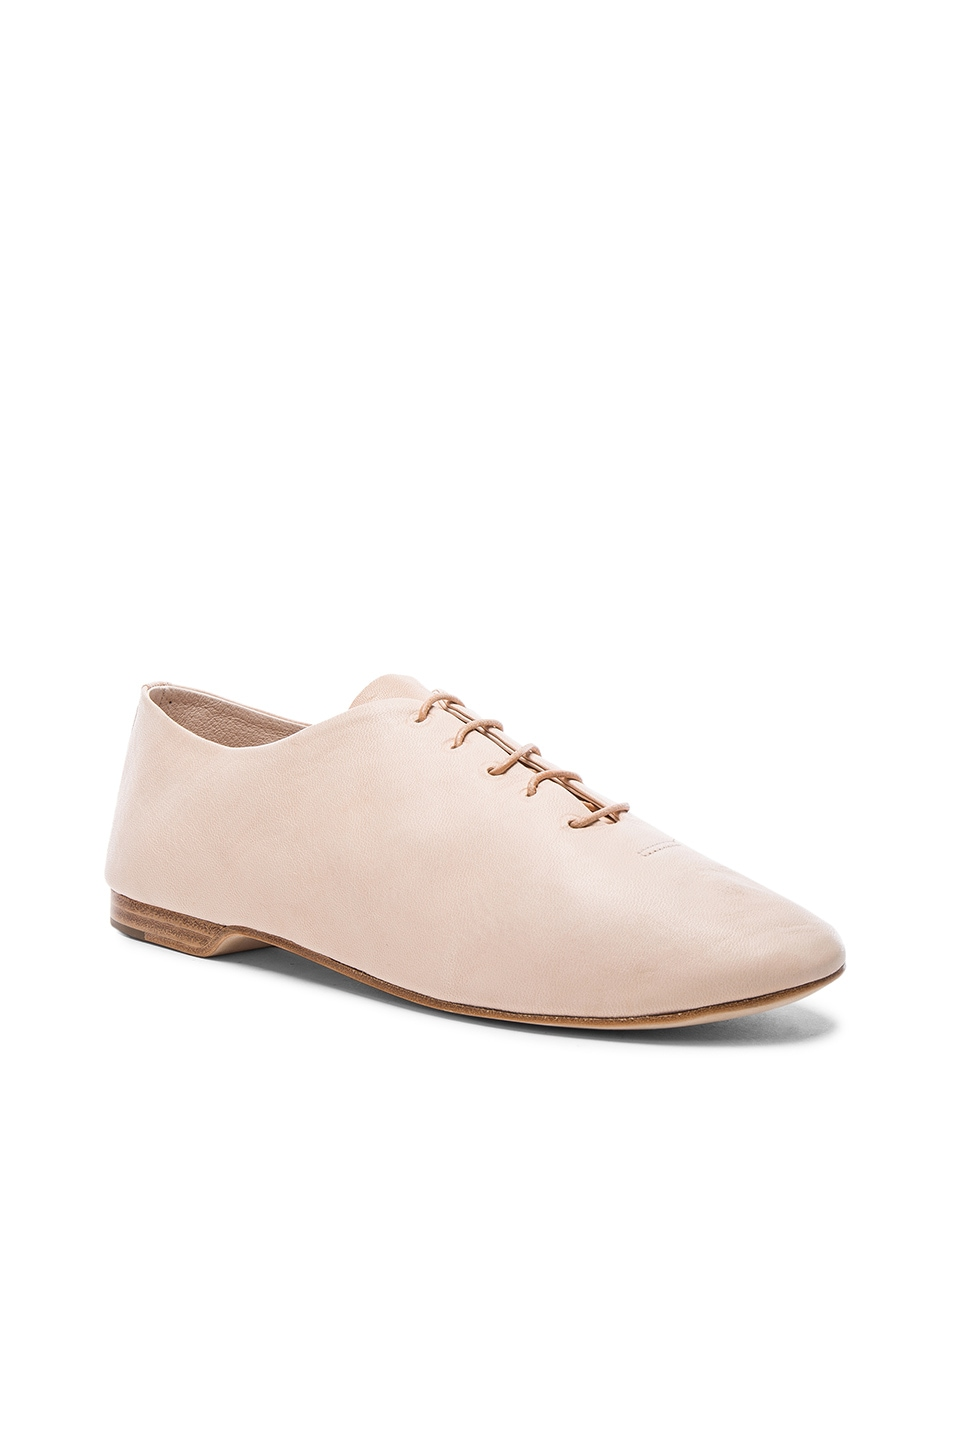 Image 1 of Hender Scheme Manual Industrial Product 13 in Natural